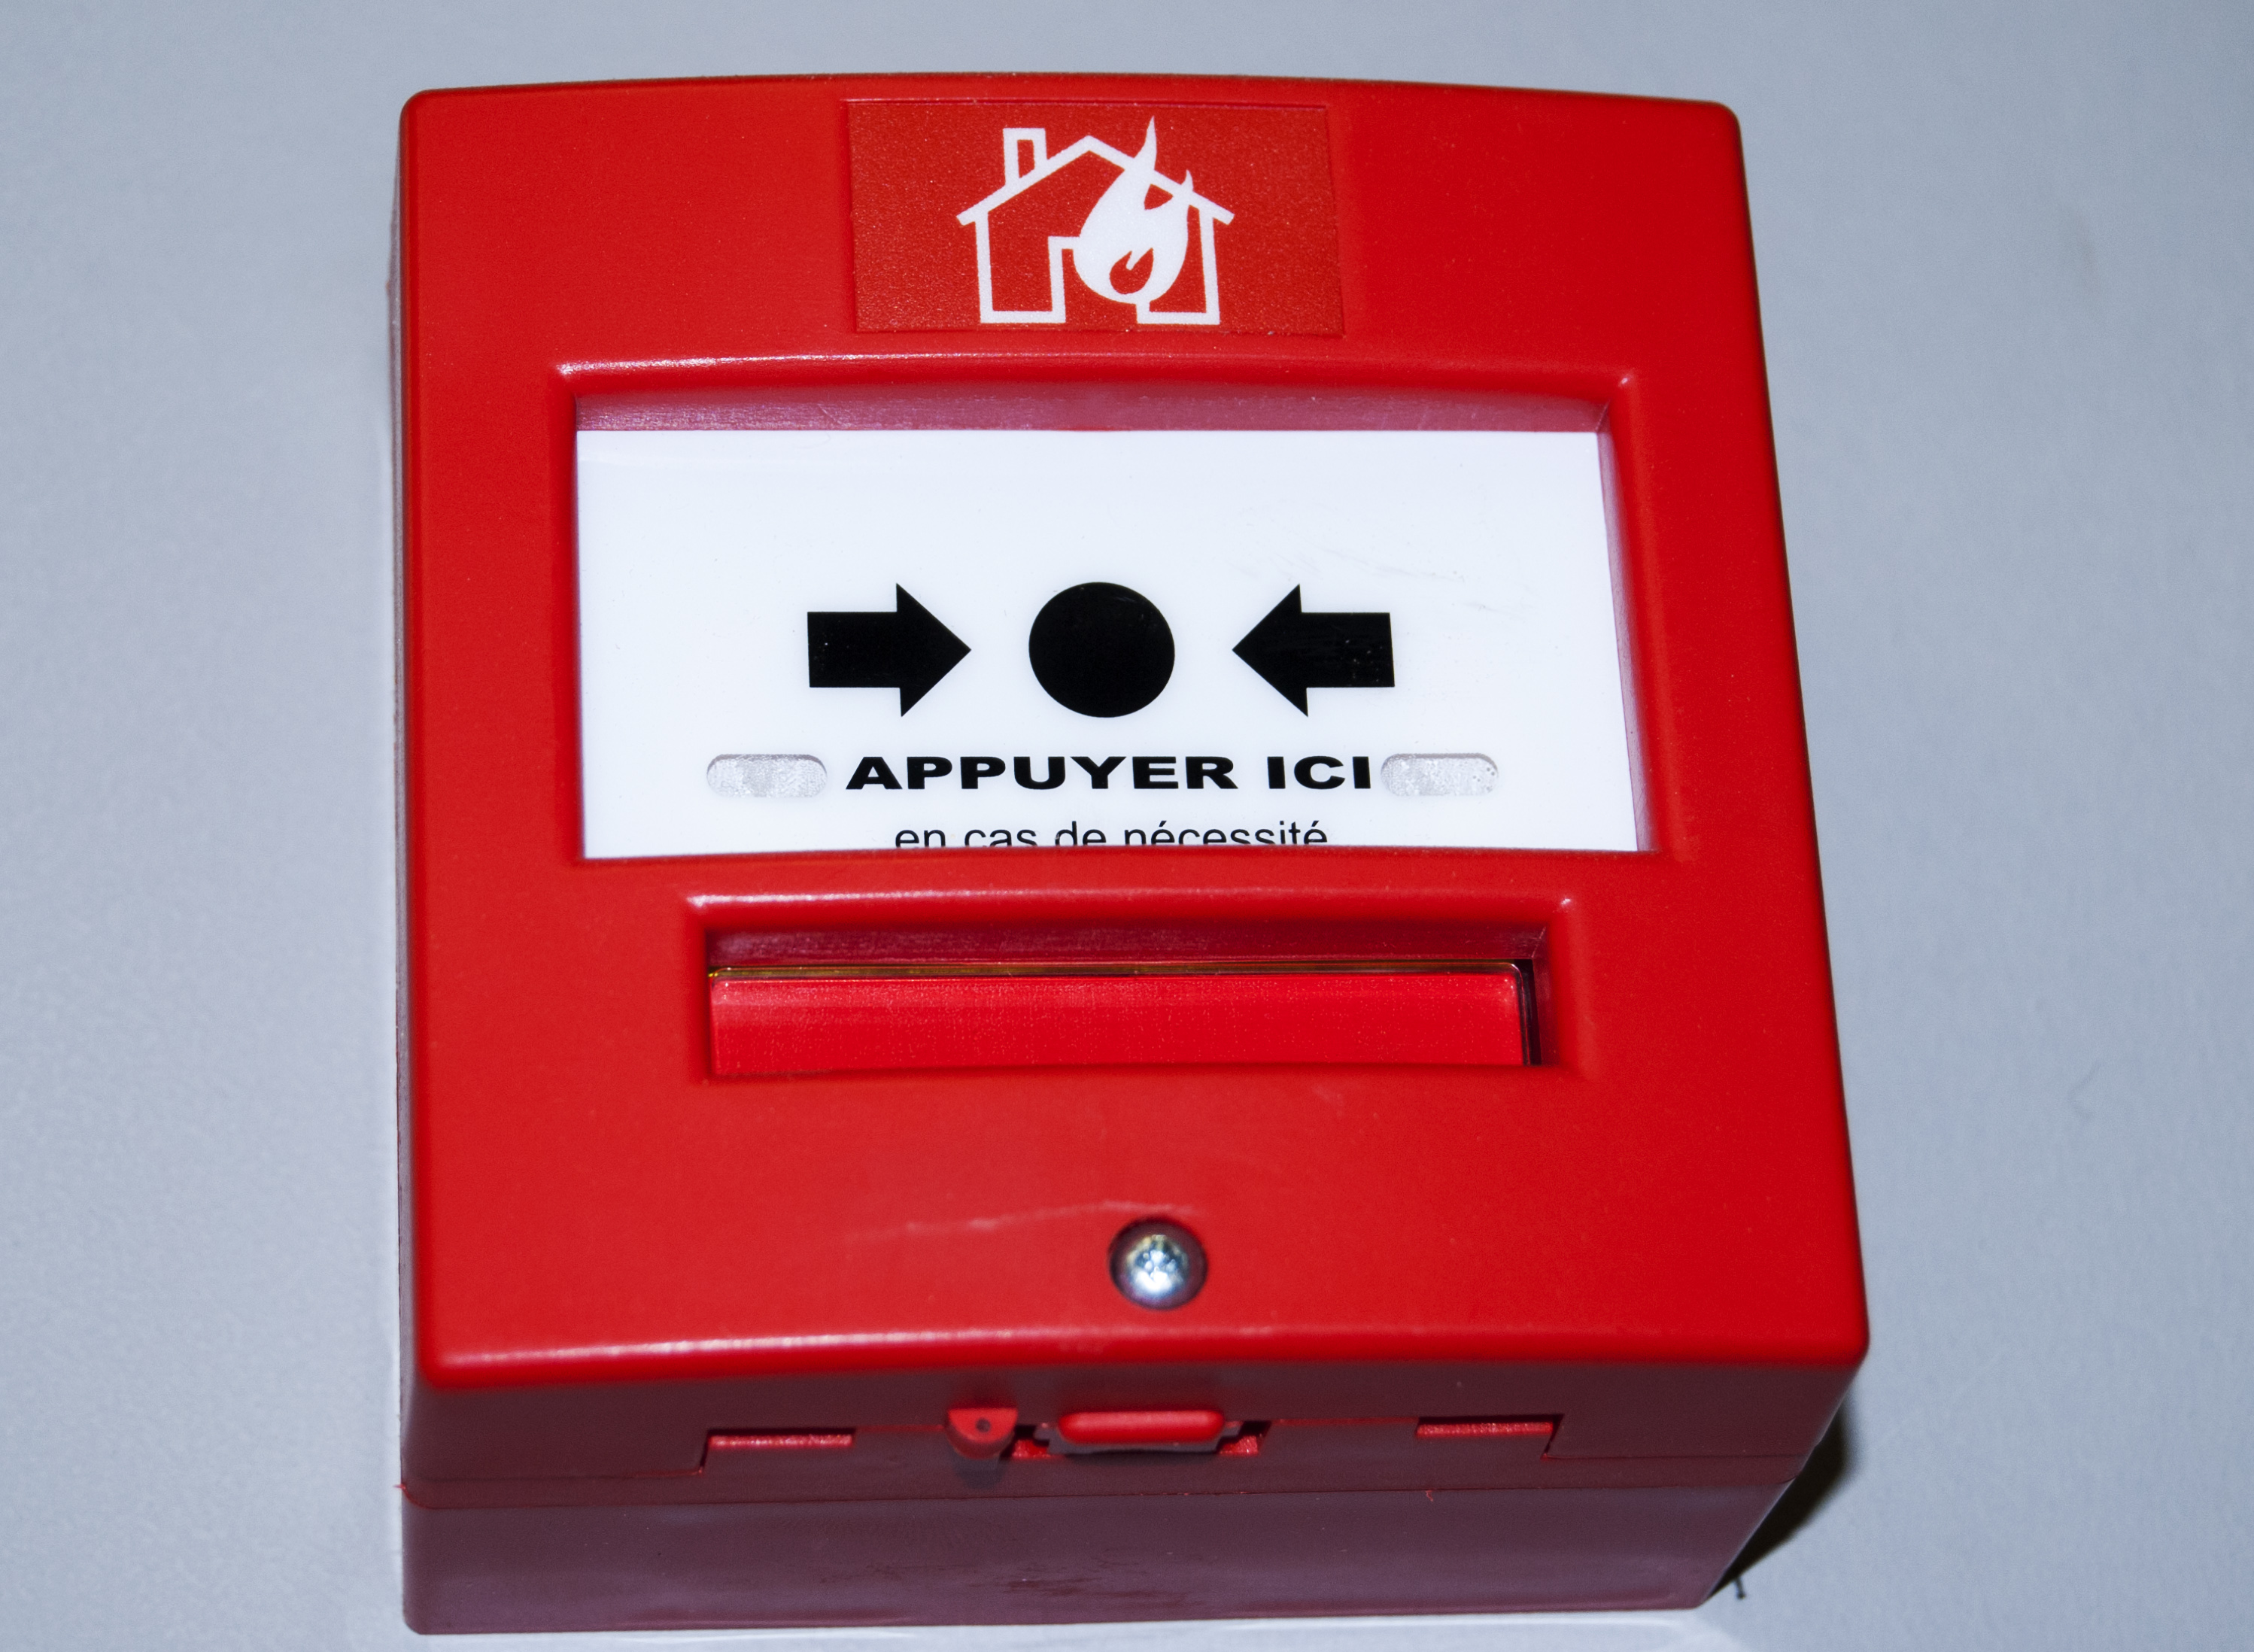 controleAccess_bouton-pompier_02